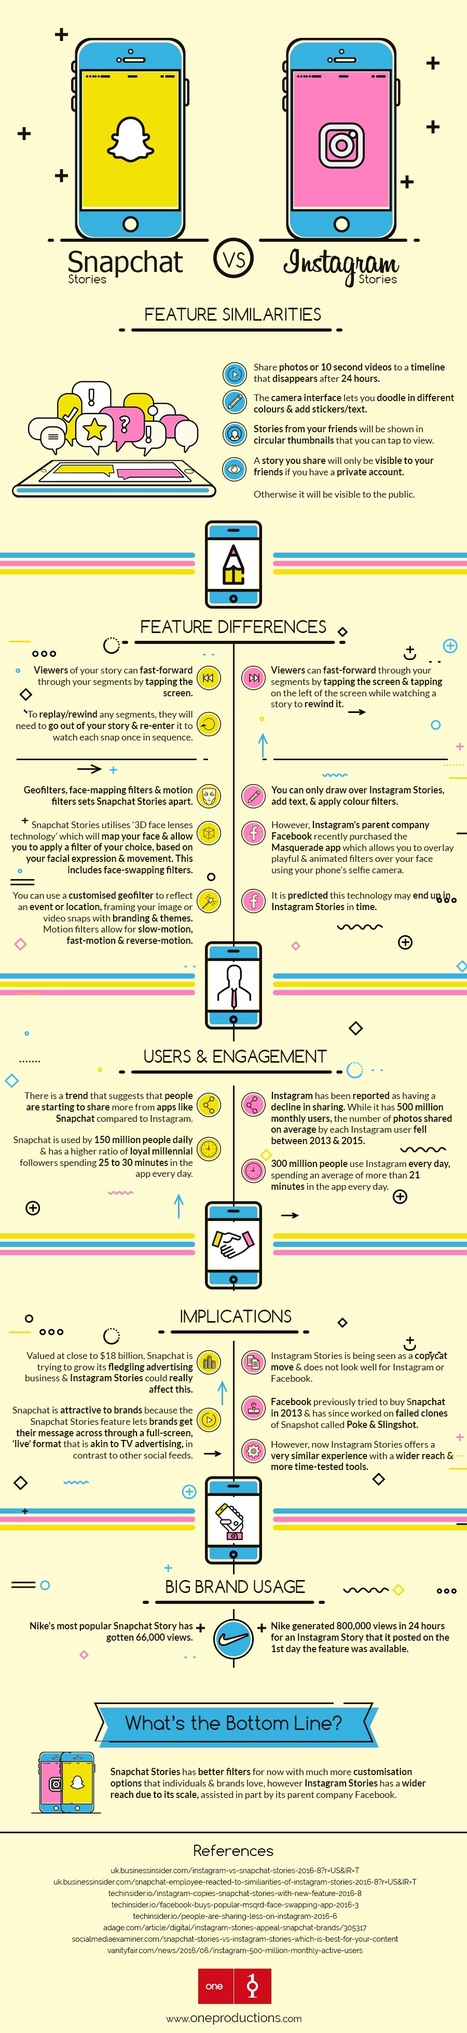 Snapchat Stories vs Instagram Stories #Infographic | Business News & Finance | Scoop.it